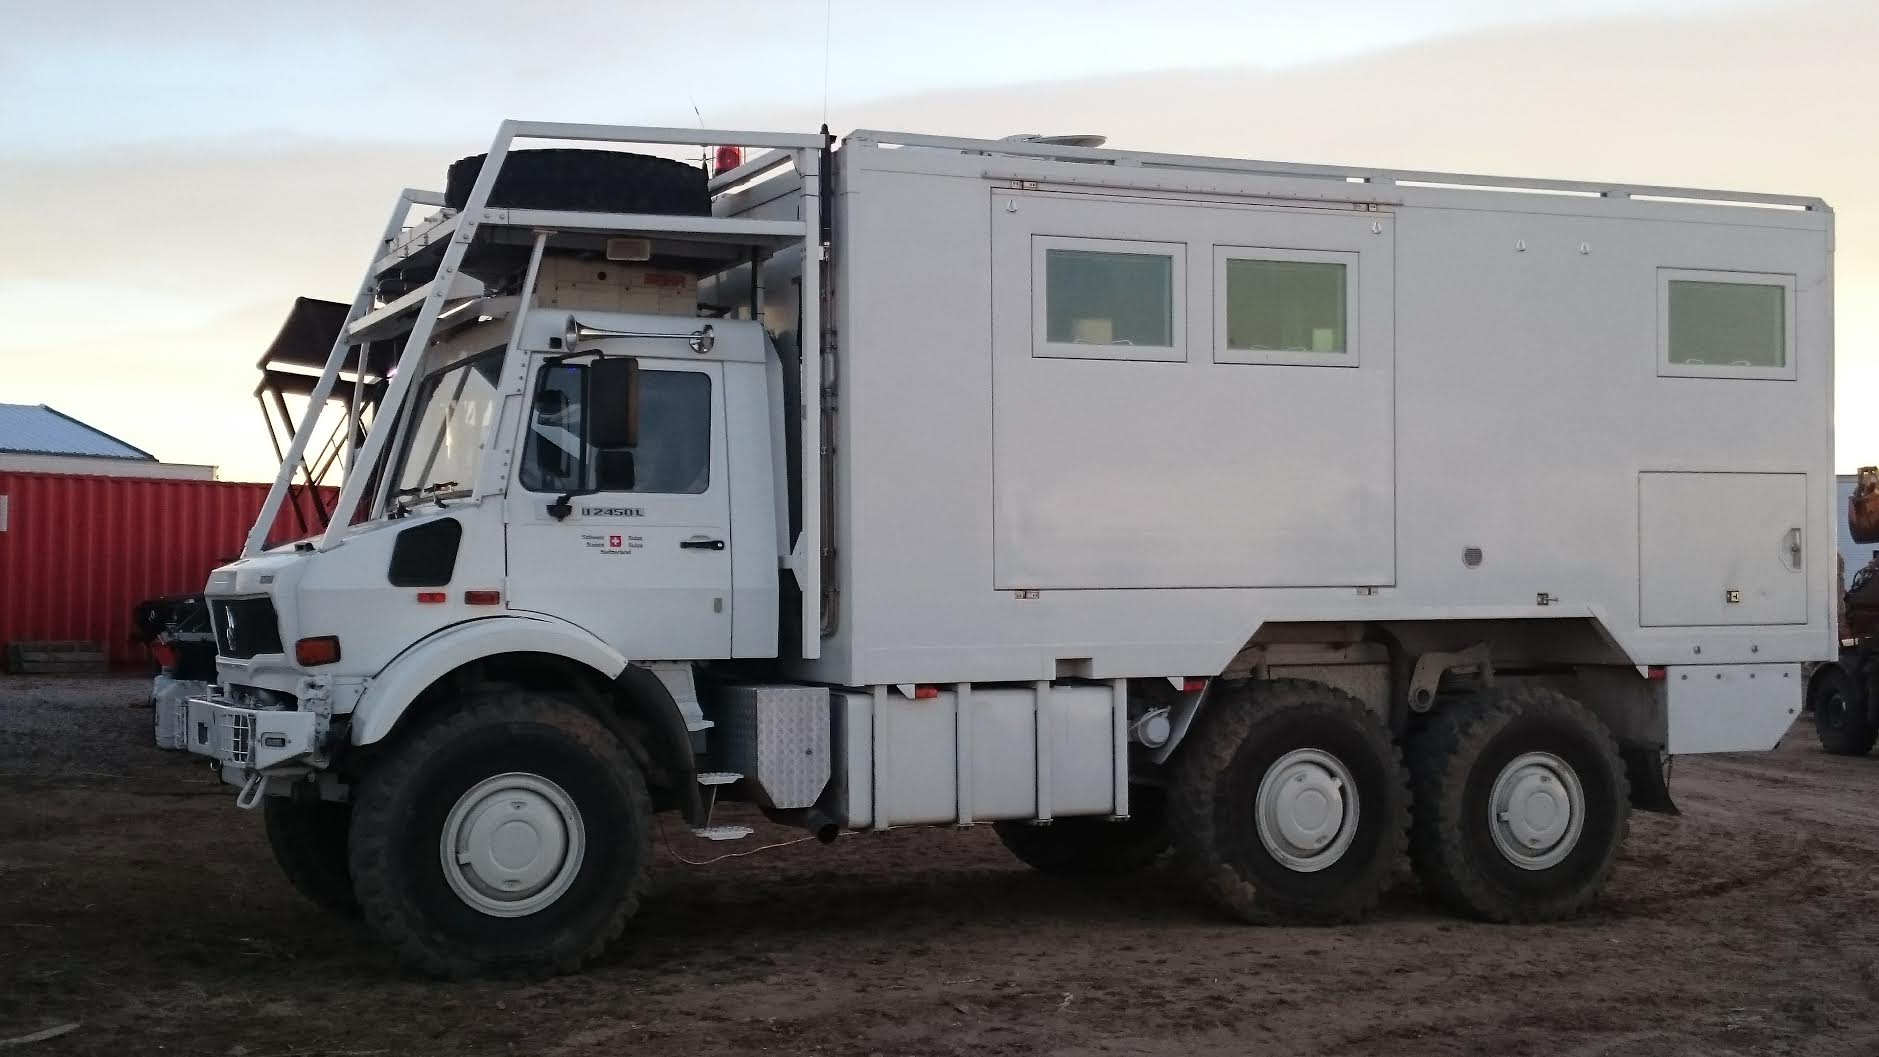 Unicat 6x6 U2450 Camper Couch Off Road Engineering